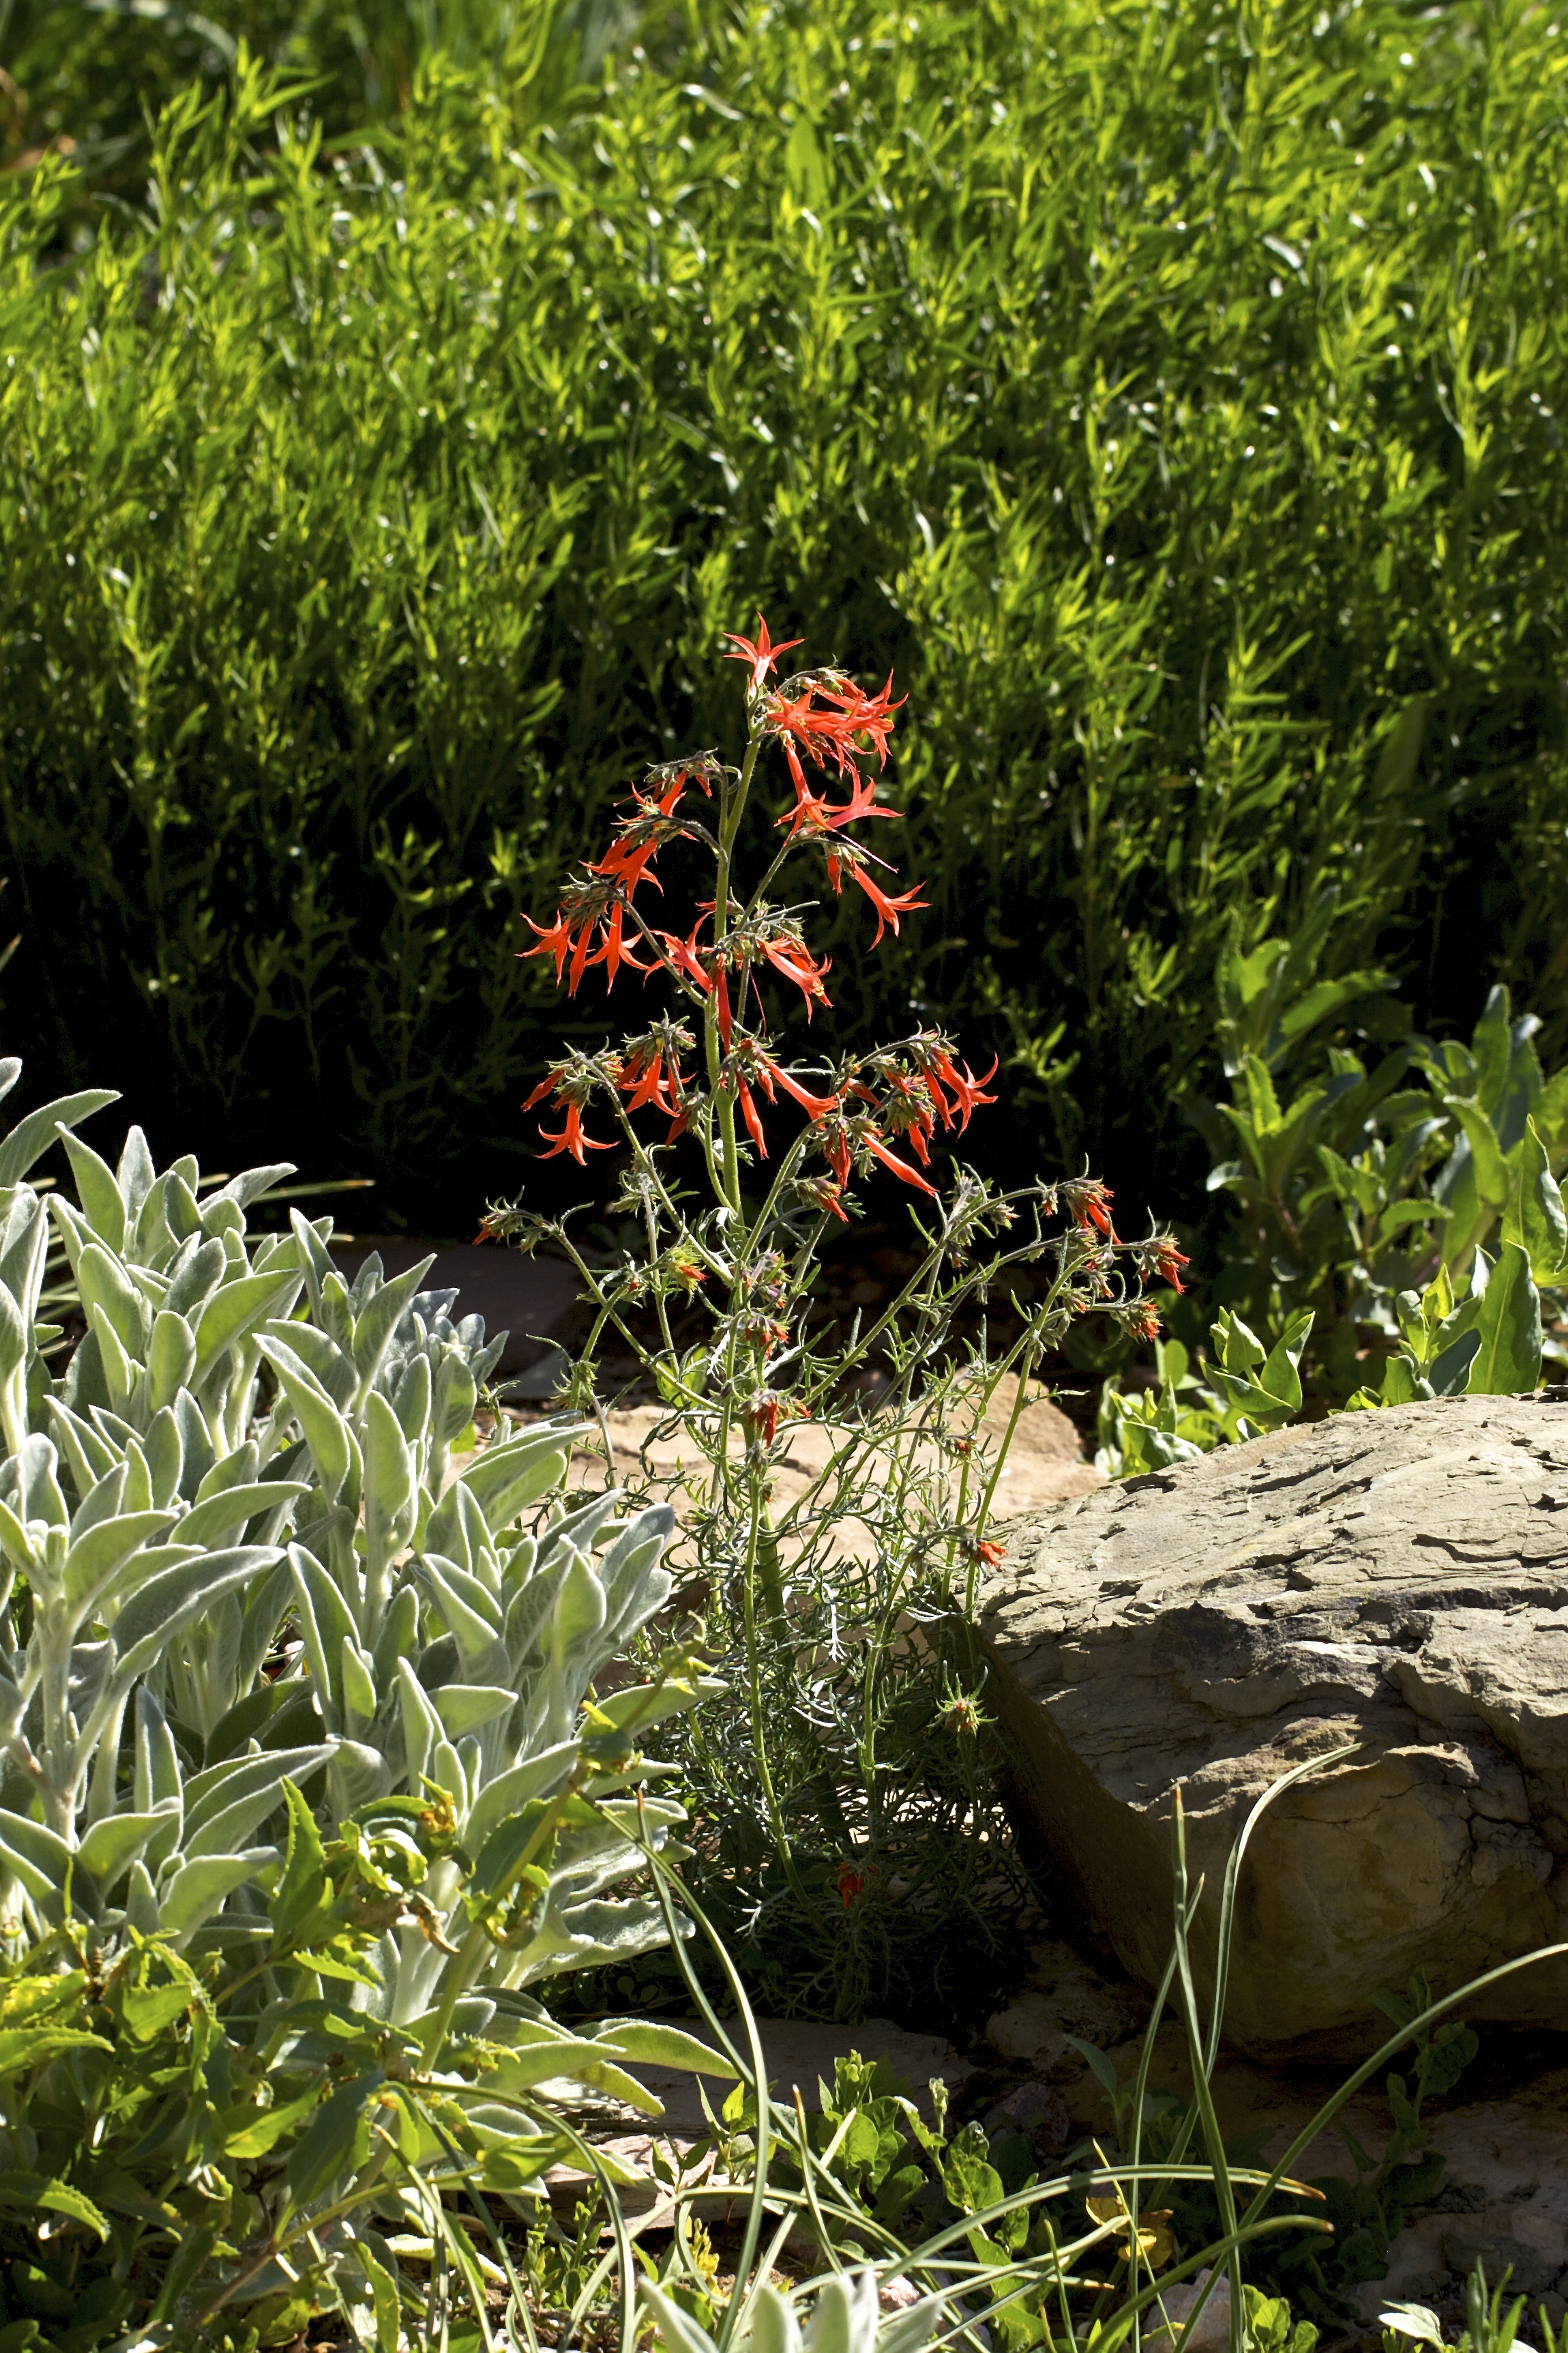 I've only seen a hummingbird once at this scarlet gilia that sprang up in the spring border. I sometimes sit nearby and wait with the camera. One of these days...